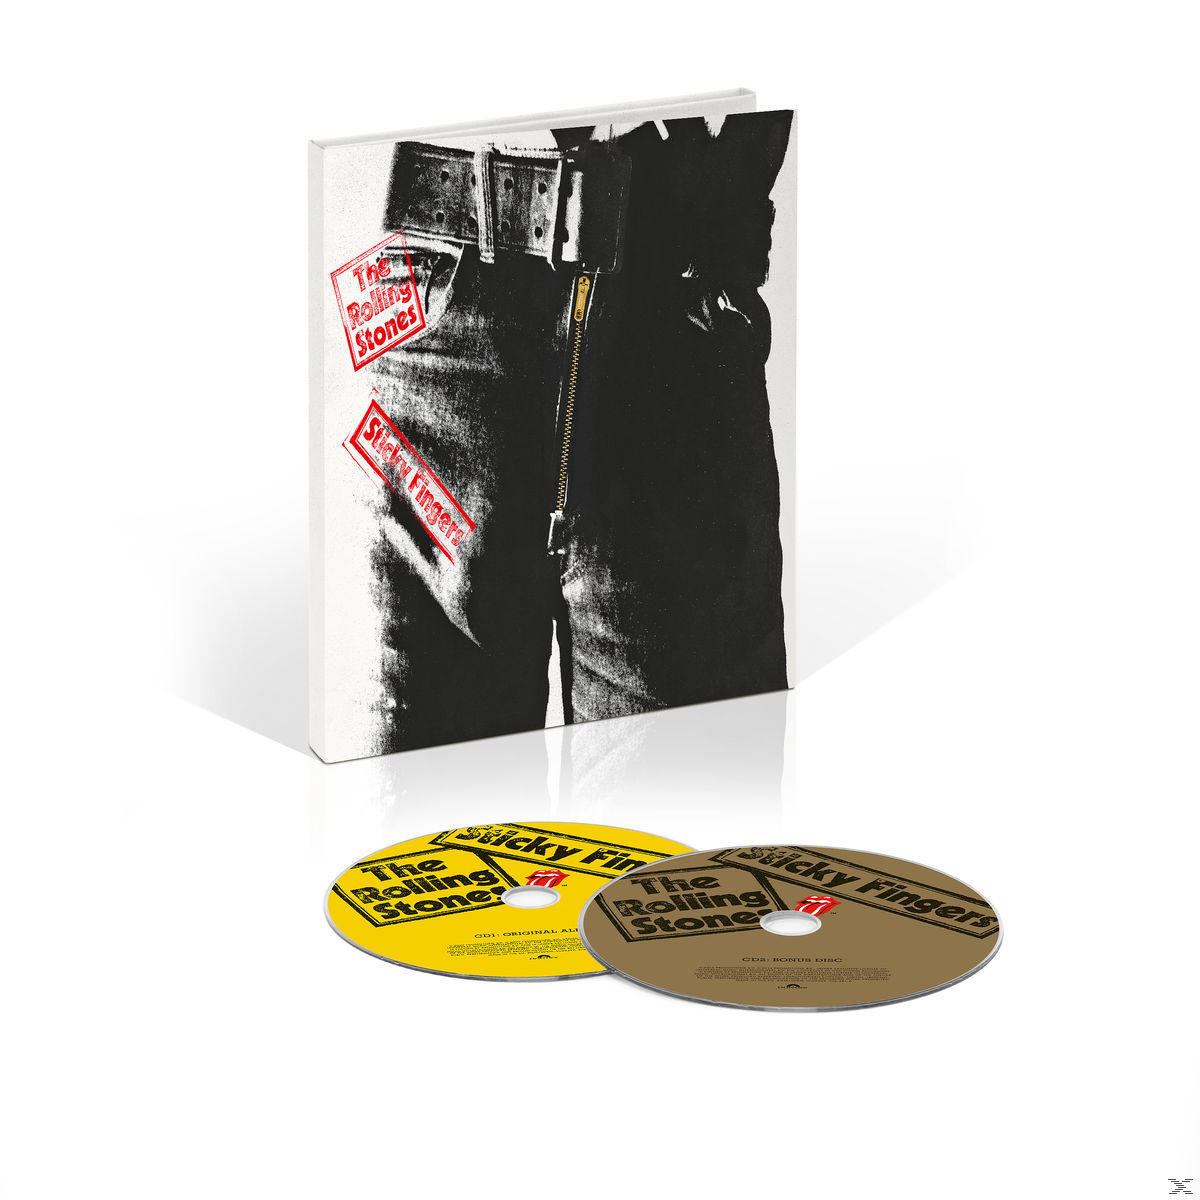 STICKY FINGERS (2CD DLX)